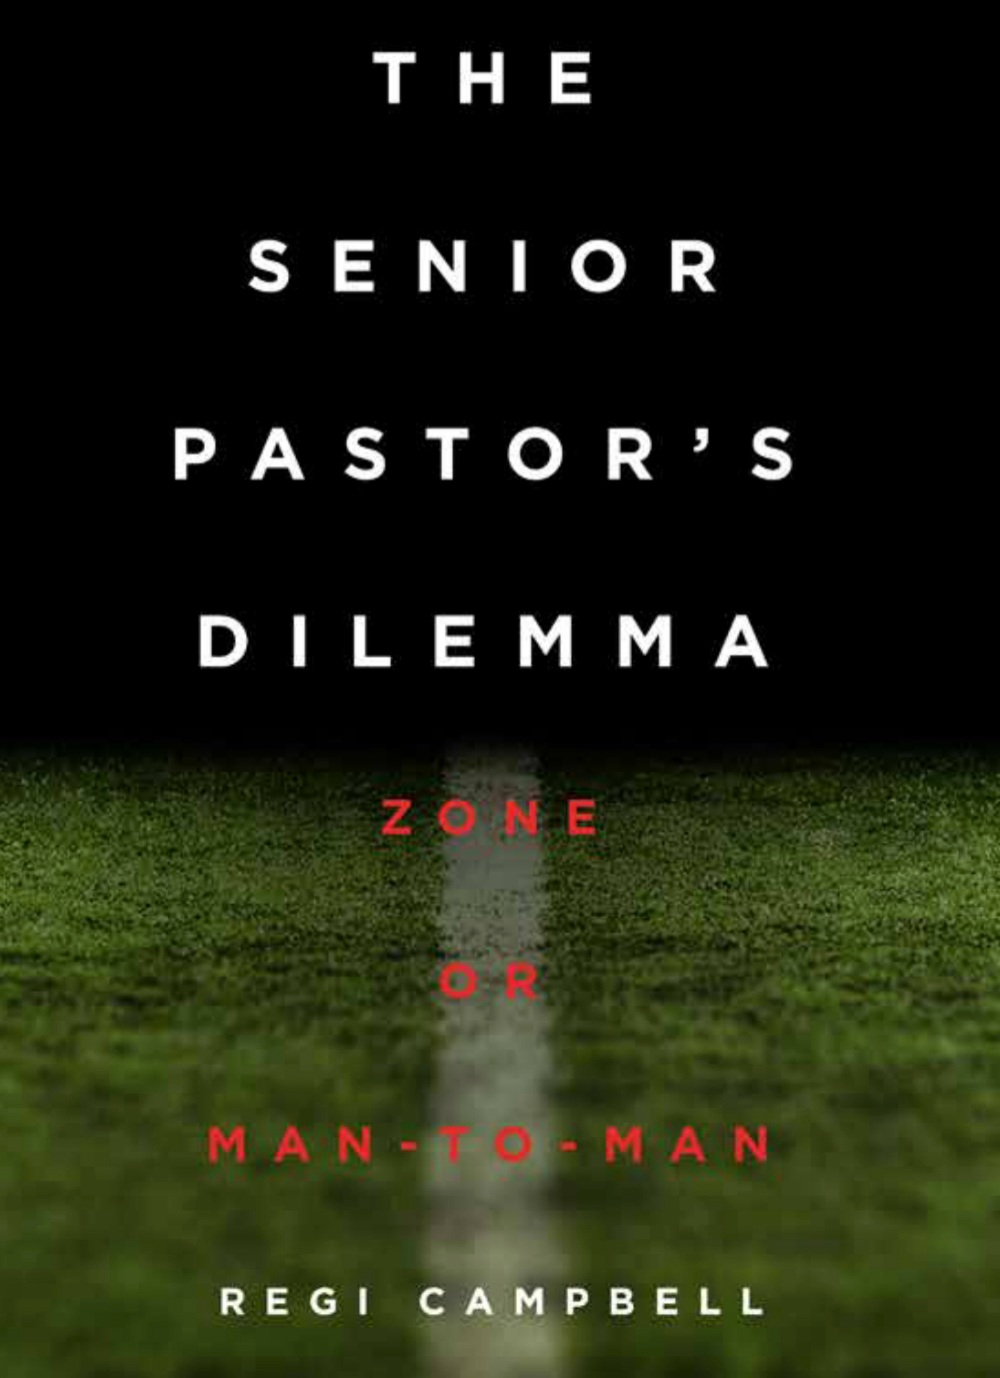 Senior-Pastors-Dilemma-cover.jpg